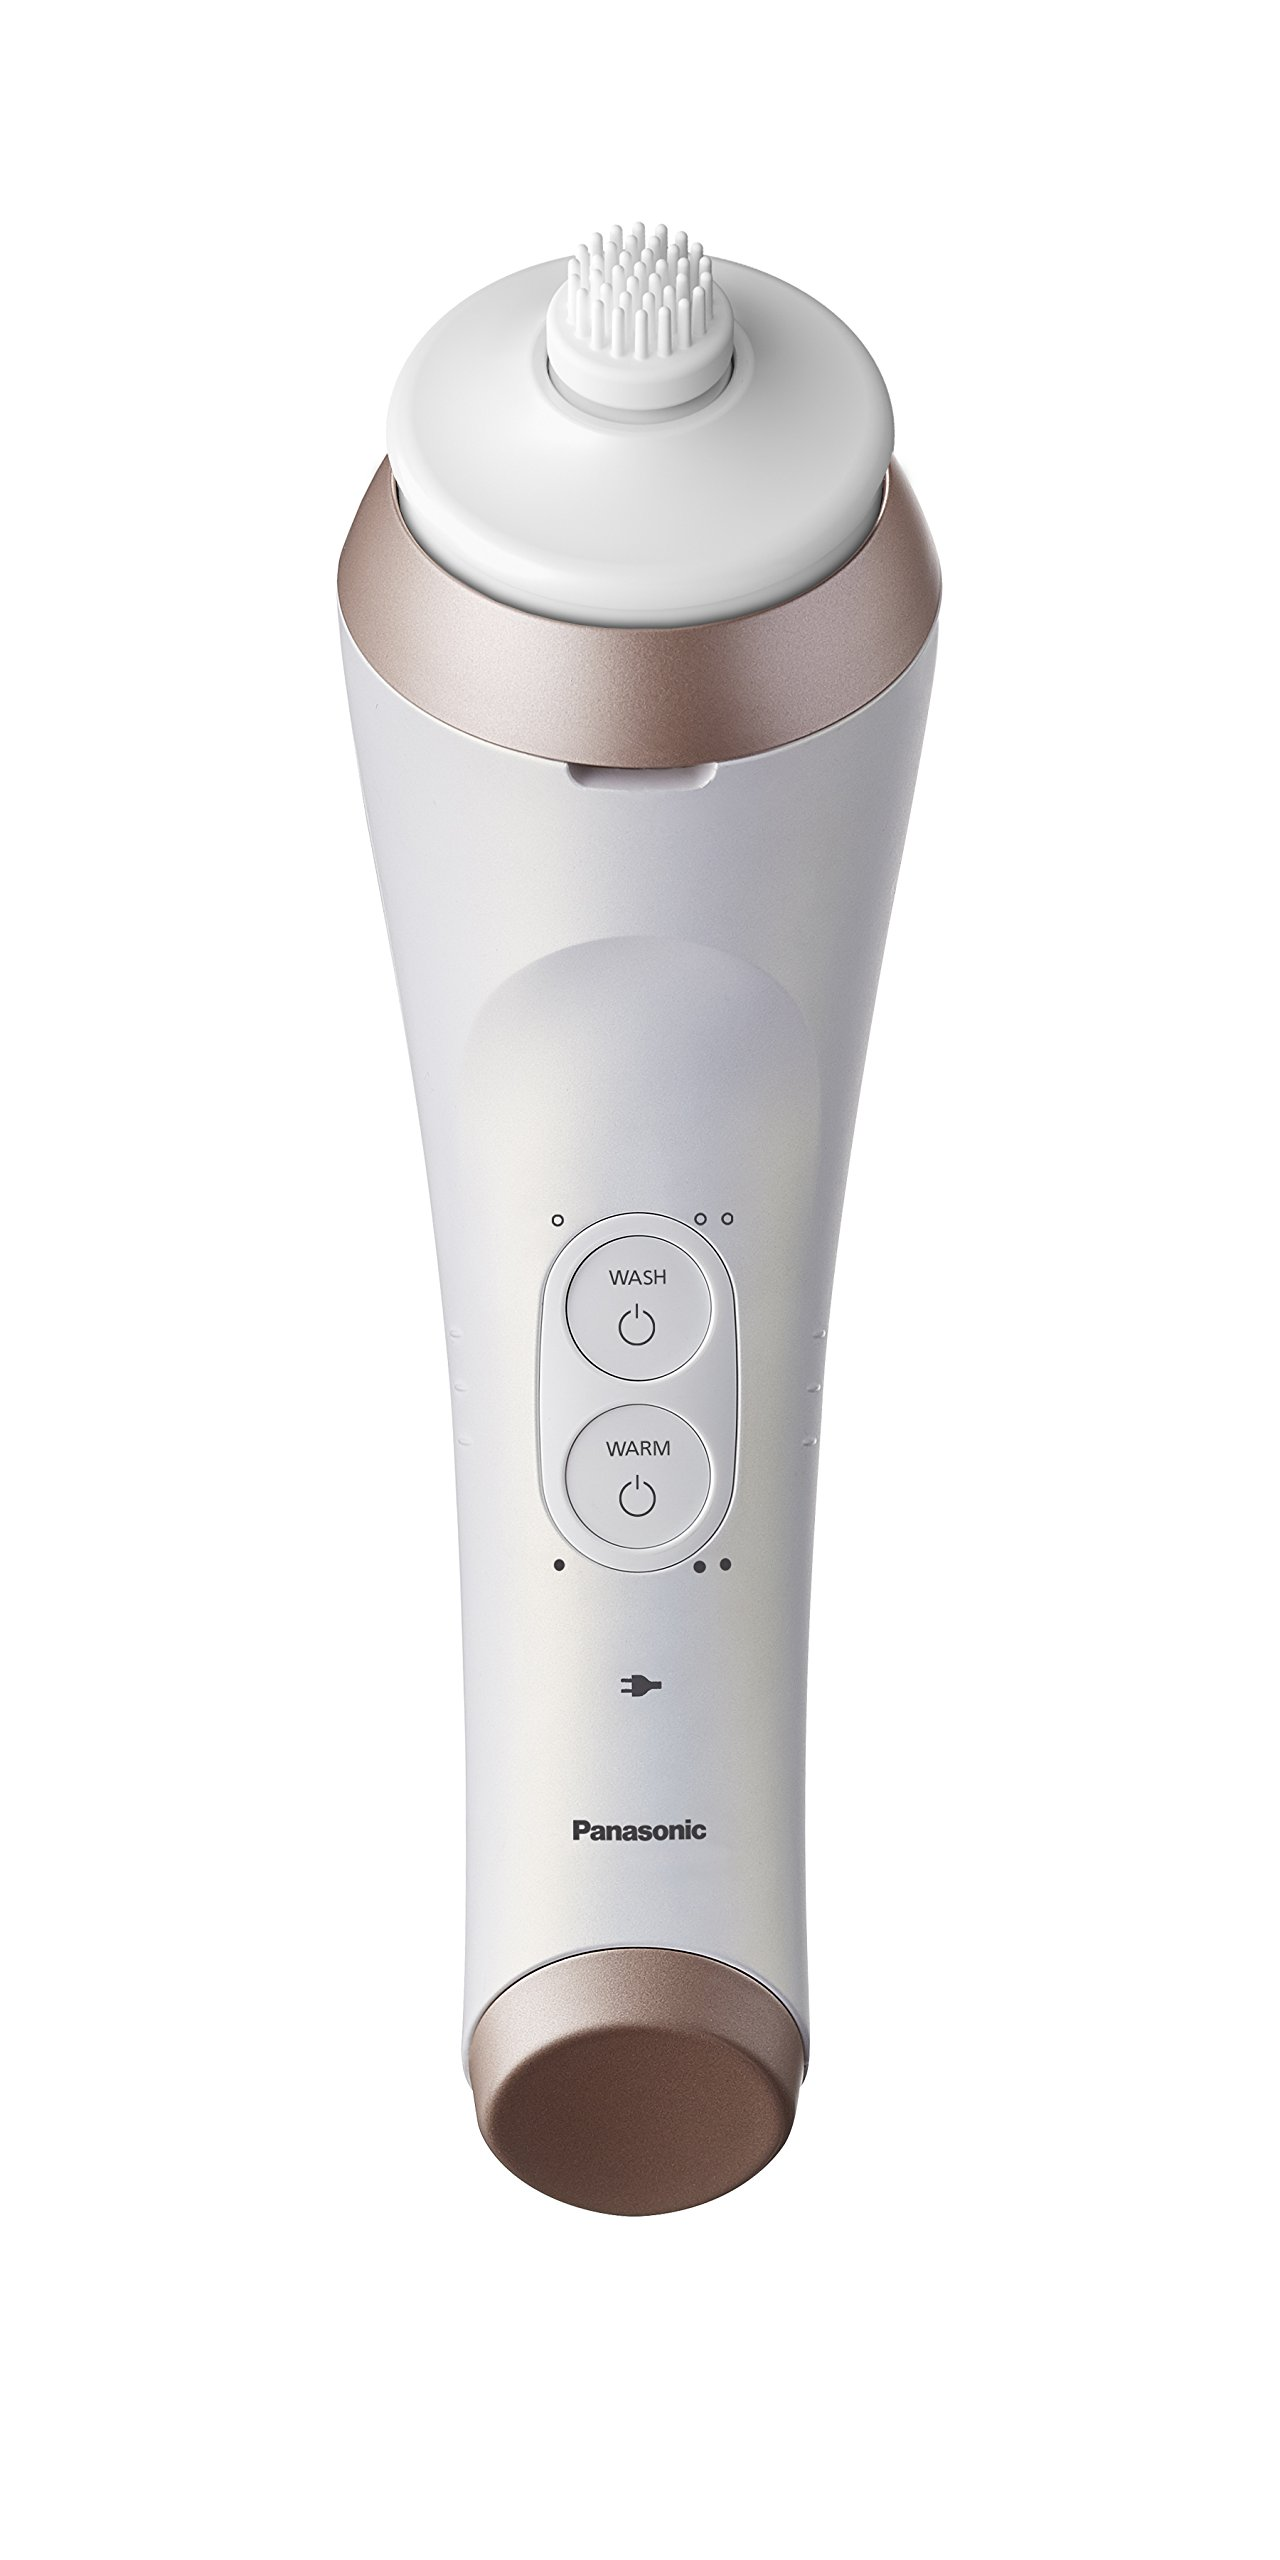 Panasonic EH-XC10-N Micro-Foaming Facial Cleansing Brush with Warming Makeup Removal Plate, 20.16 Ounce by Panasonic (Image #3)